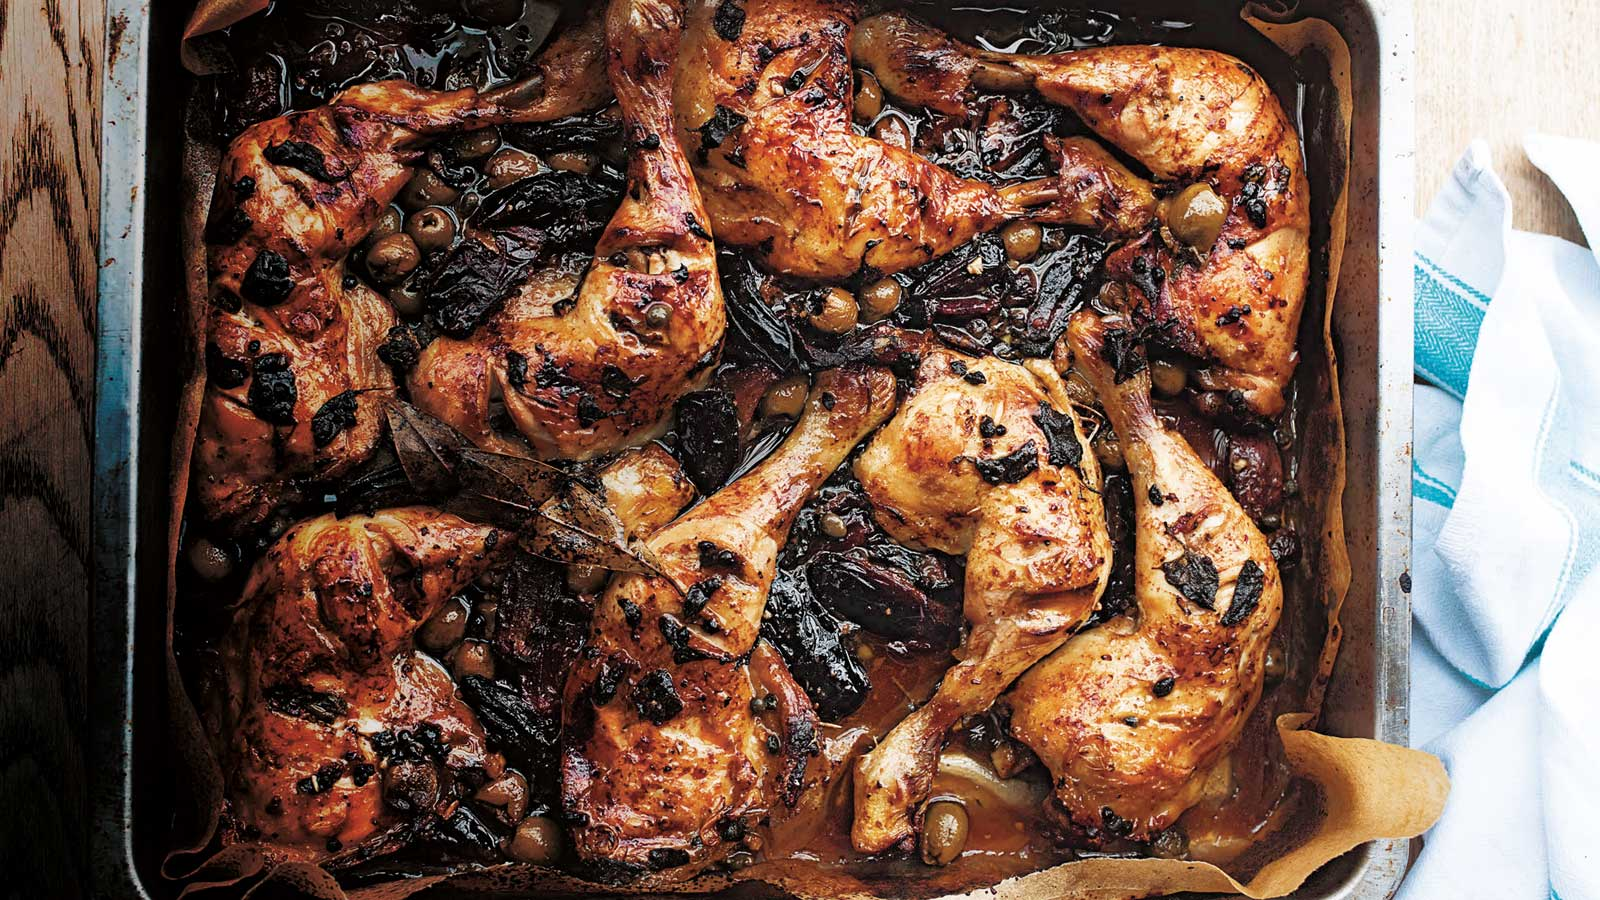 Chef Yotam Ottolenghi's Chicken Marbella With Dates, Olives, and Capers